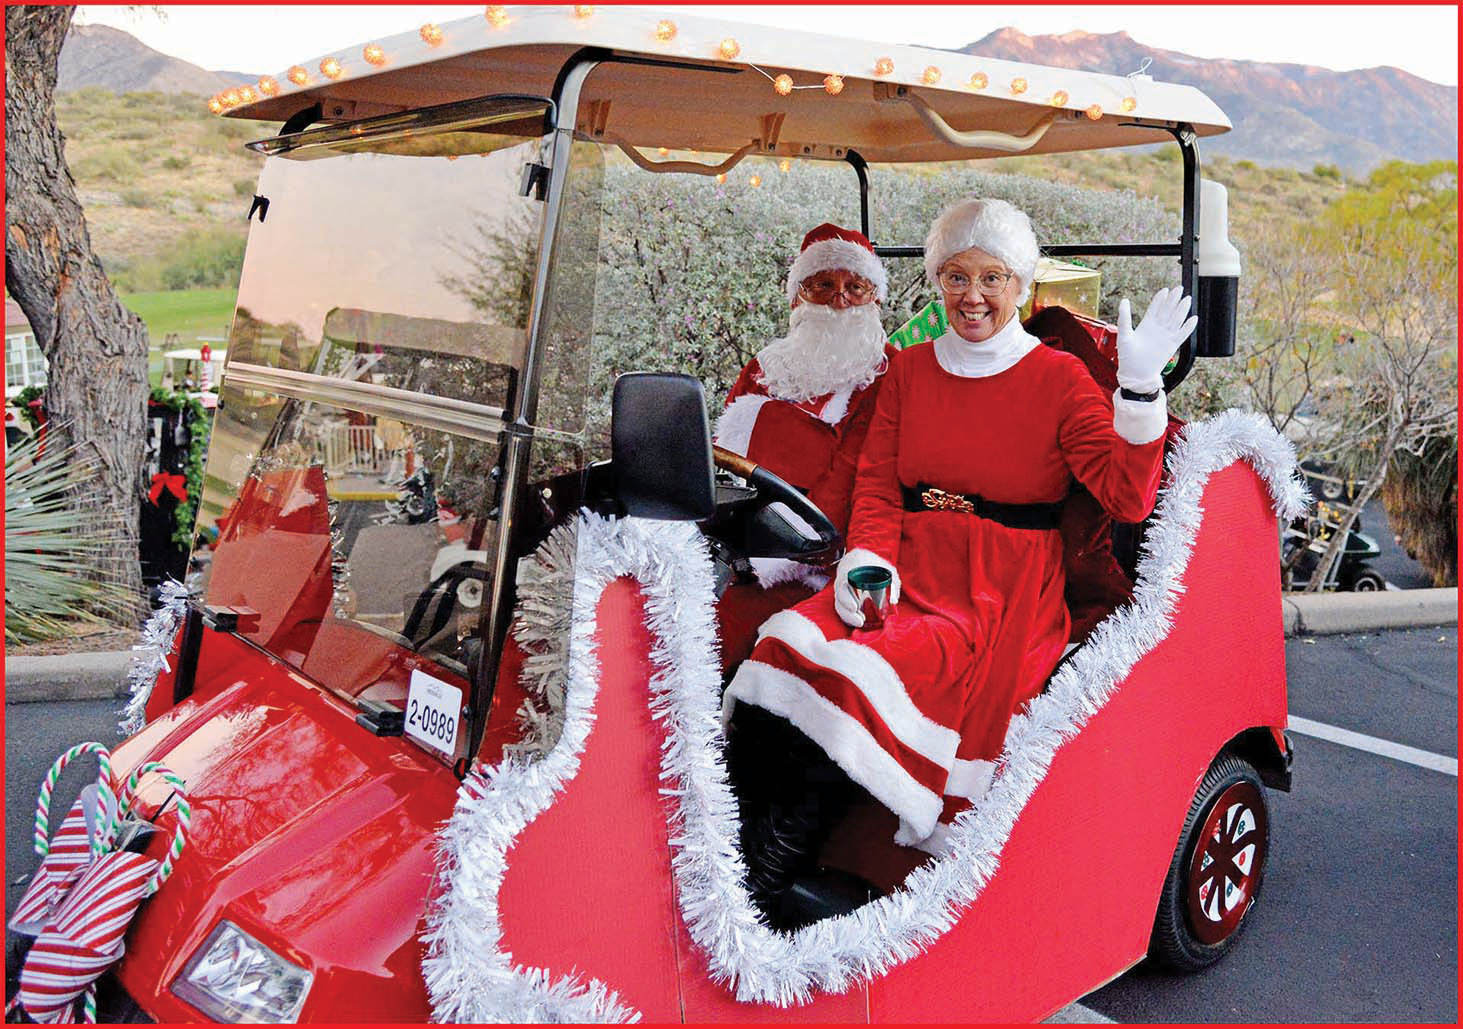 Best golf car winners Kathy and Steve Sanchez for their Mr. and Mrs. Santa Claus sled